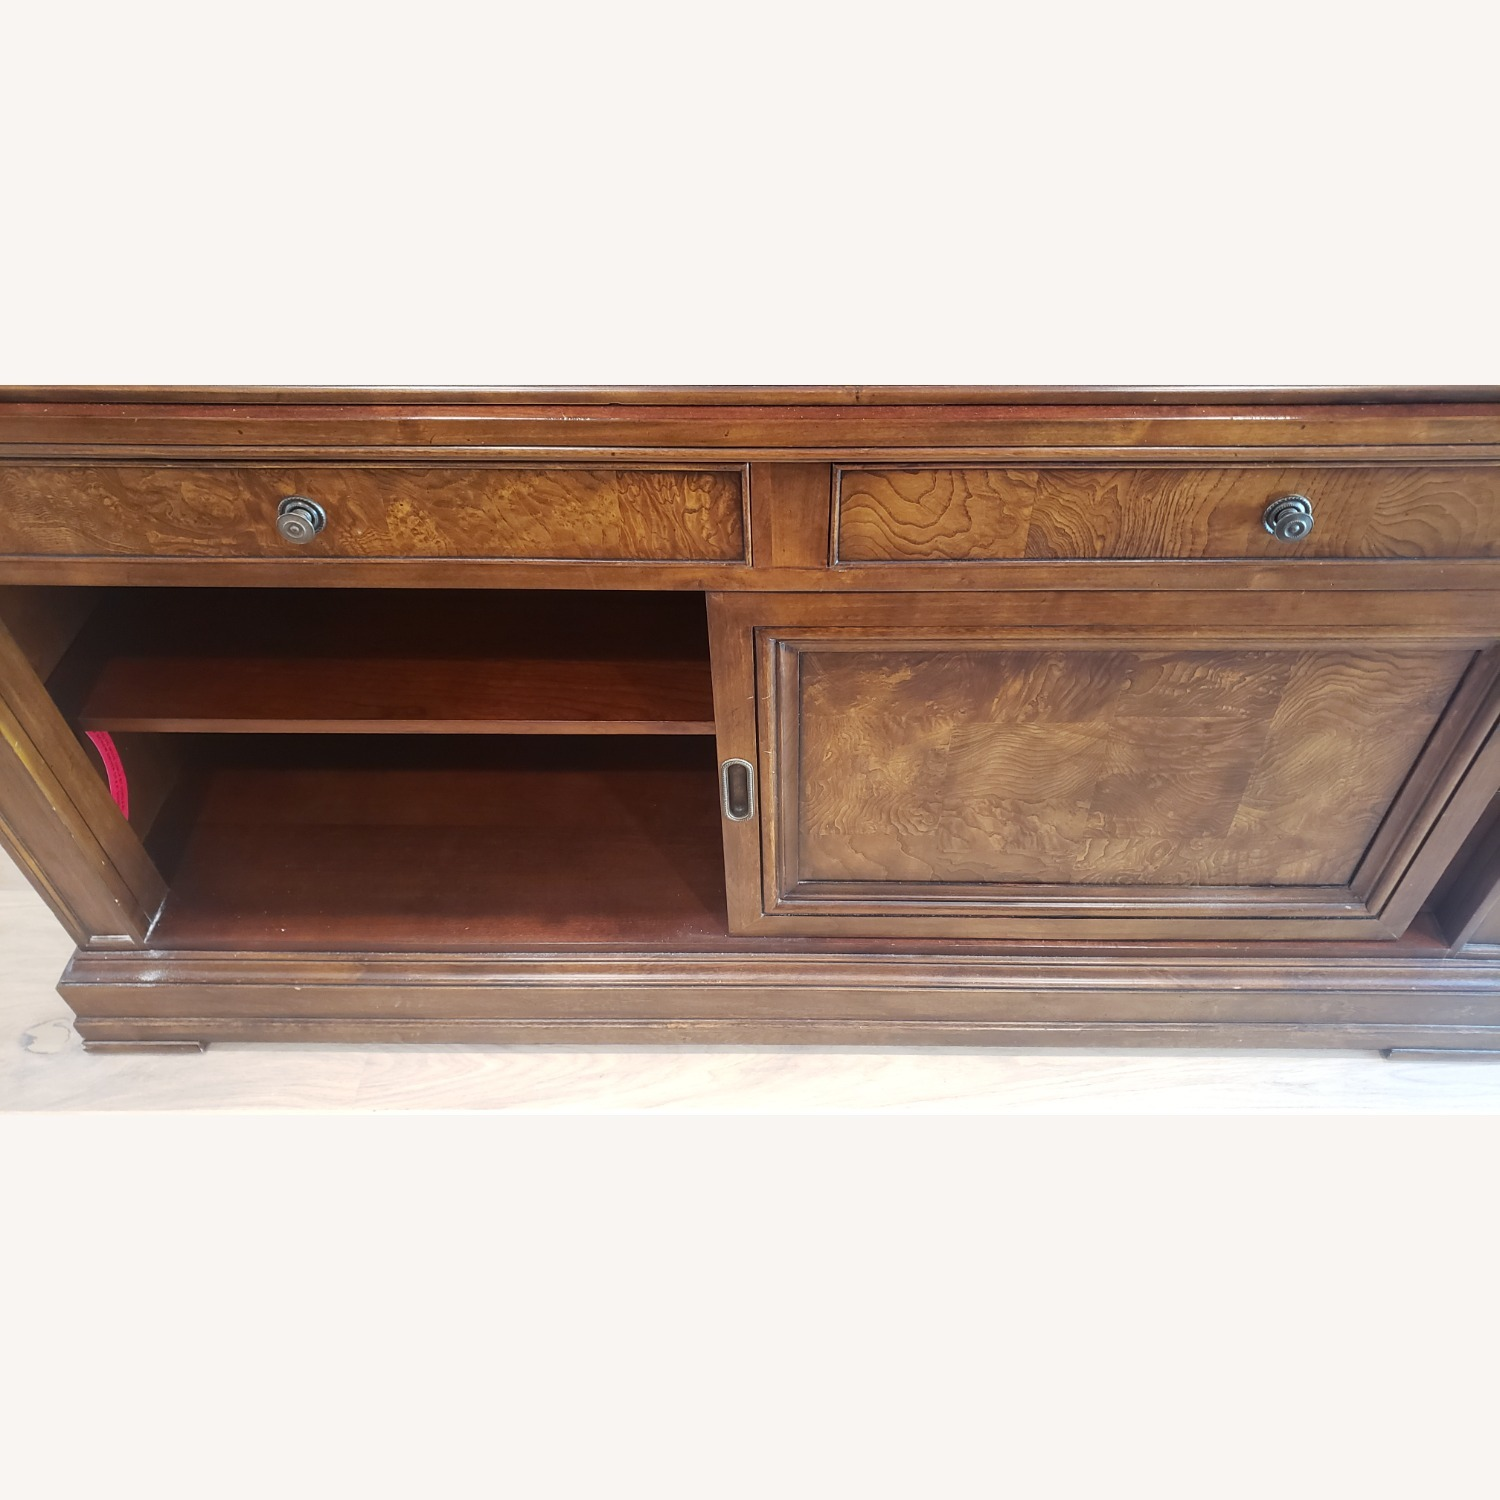 Ethan Allen Townhouse China Cabinet - image-5